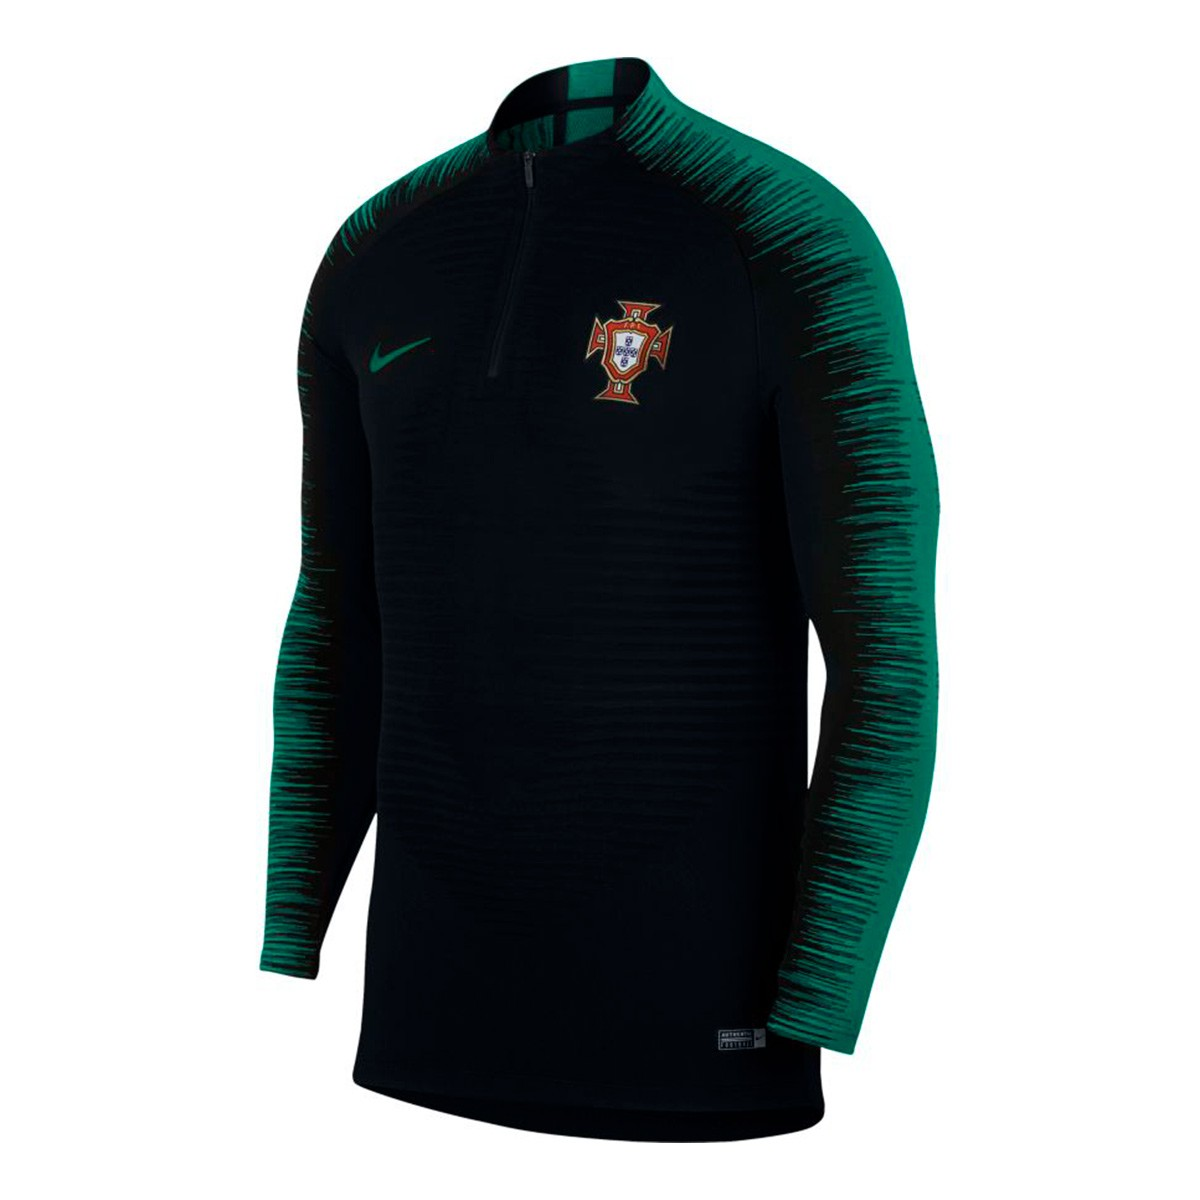 design intemporel 9acf6 cff1c Sudadera Portugal VaporKnit Strike 2018-2019 Black-Kinetic green